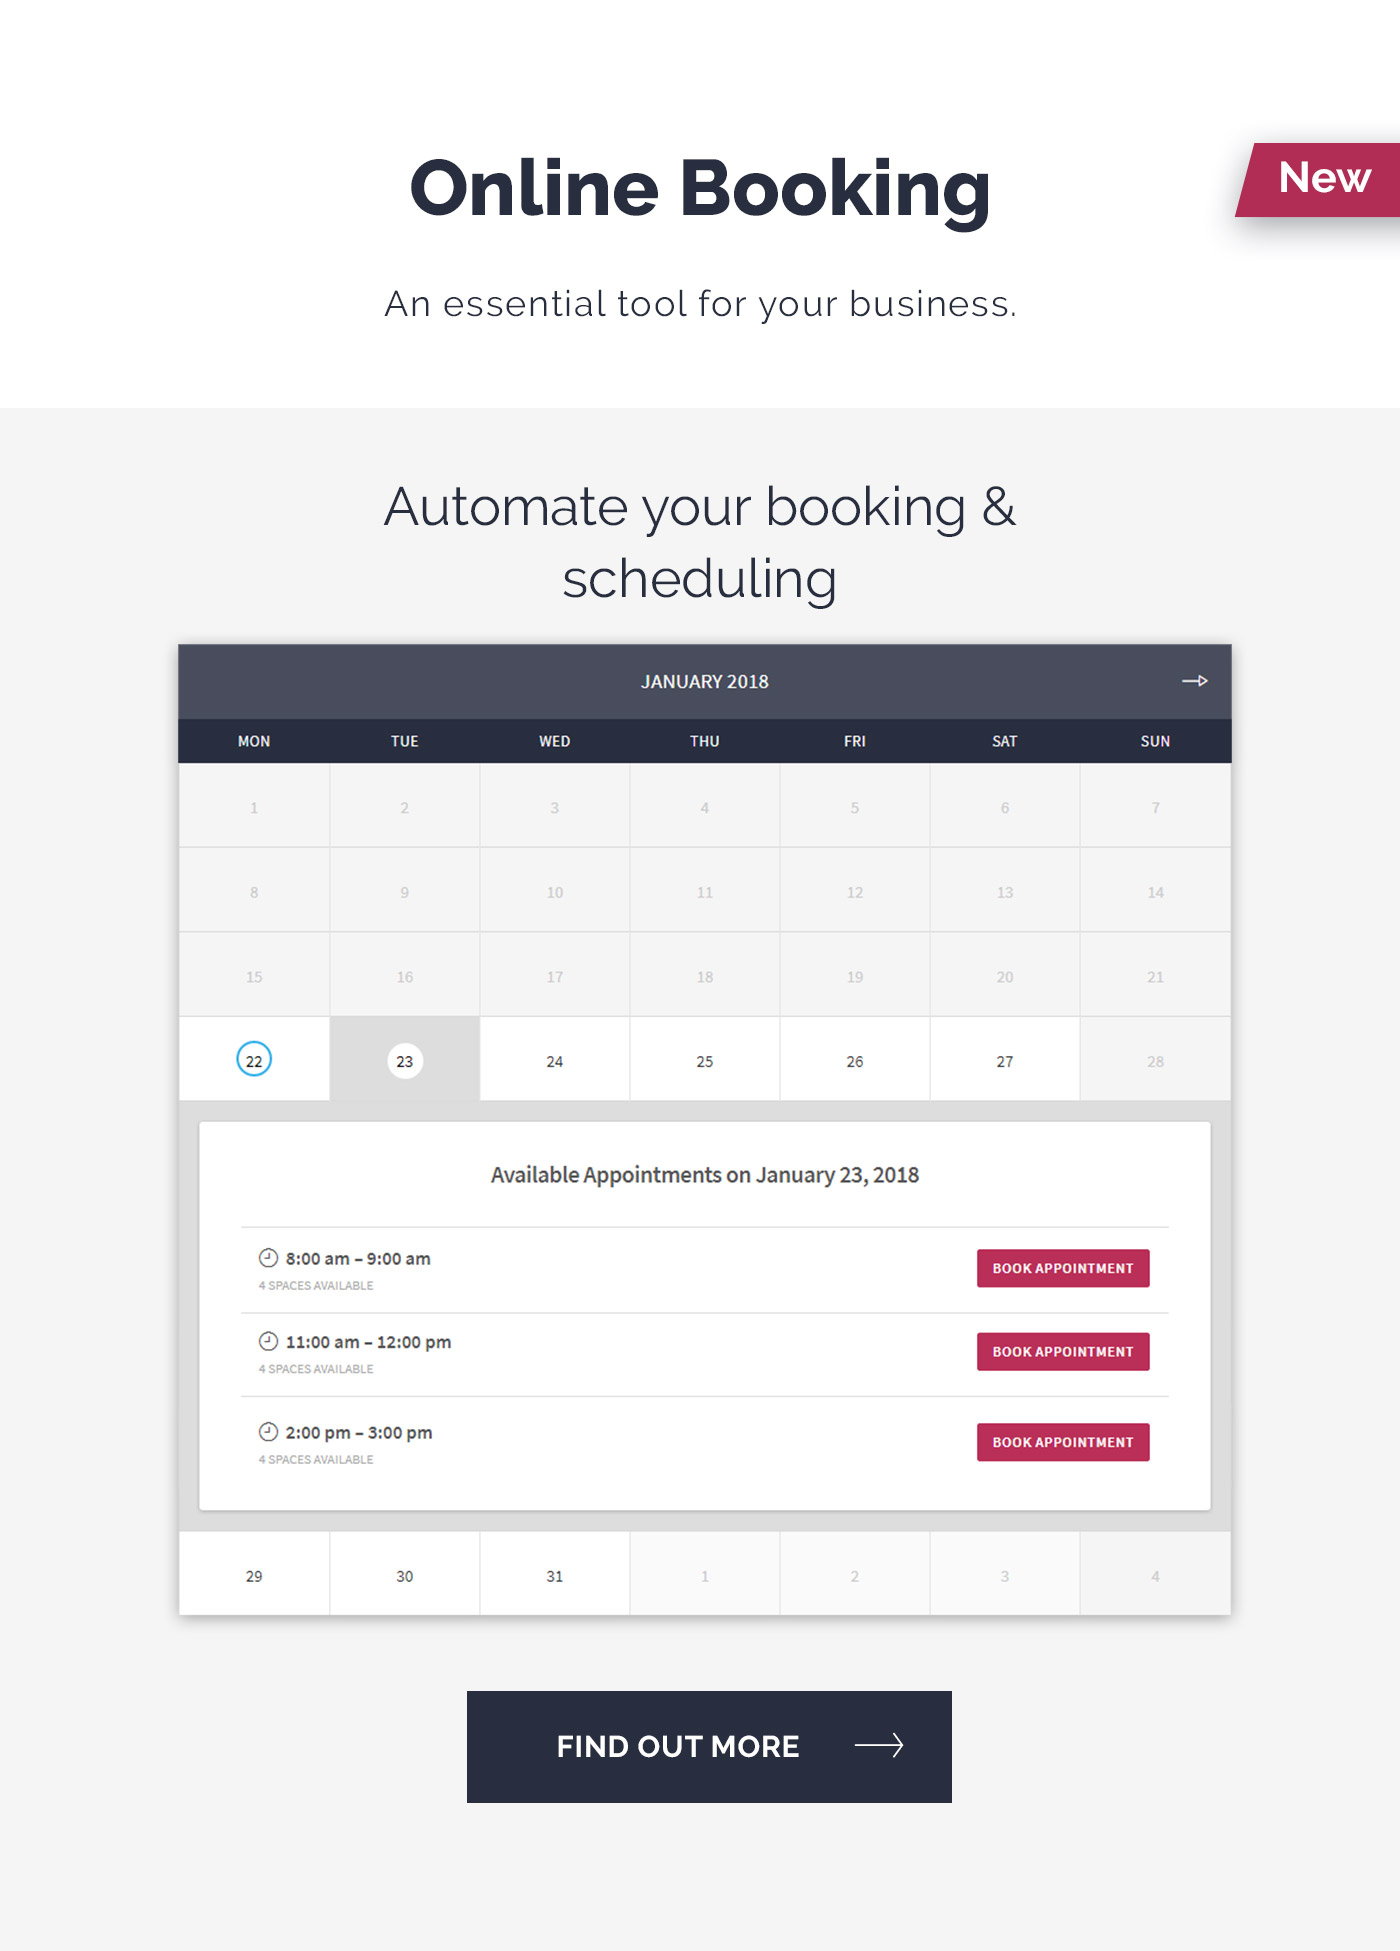 RedSeal online booking feature